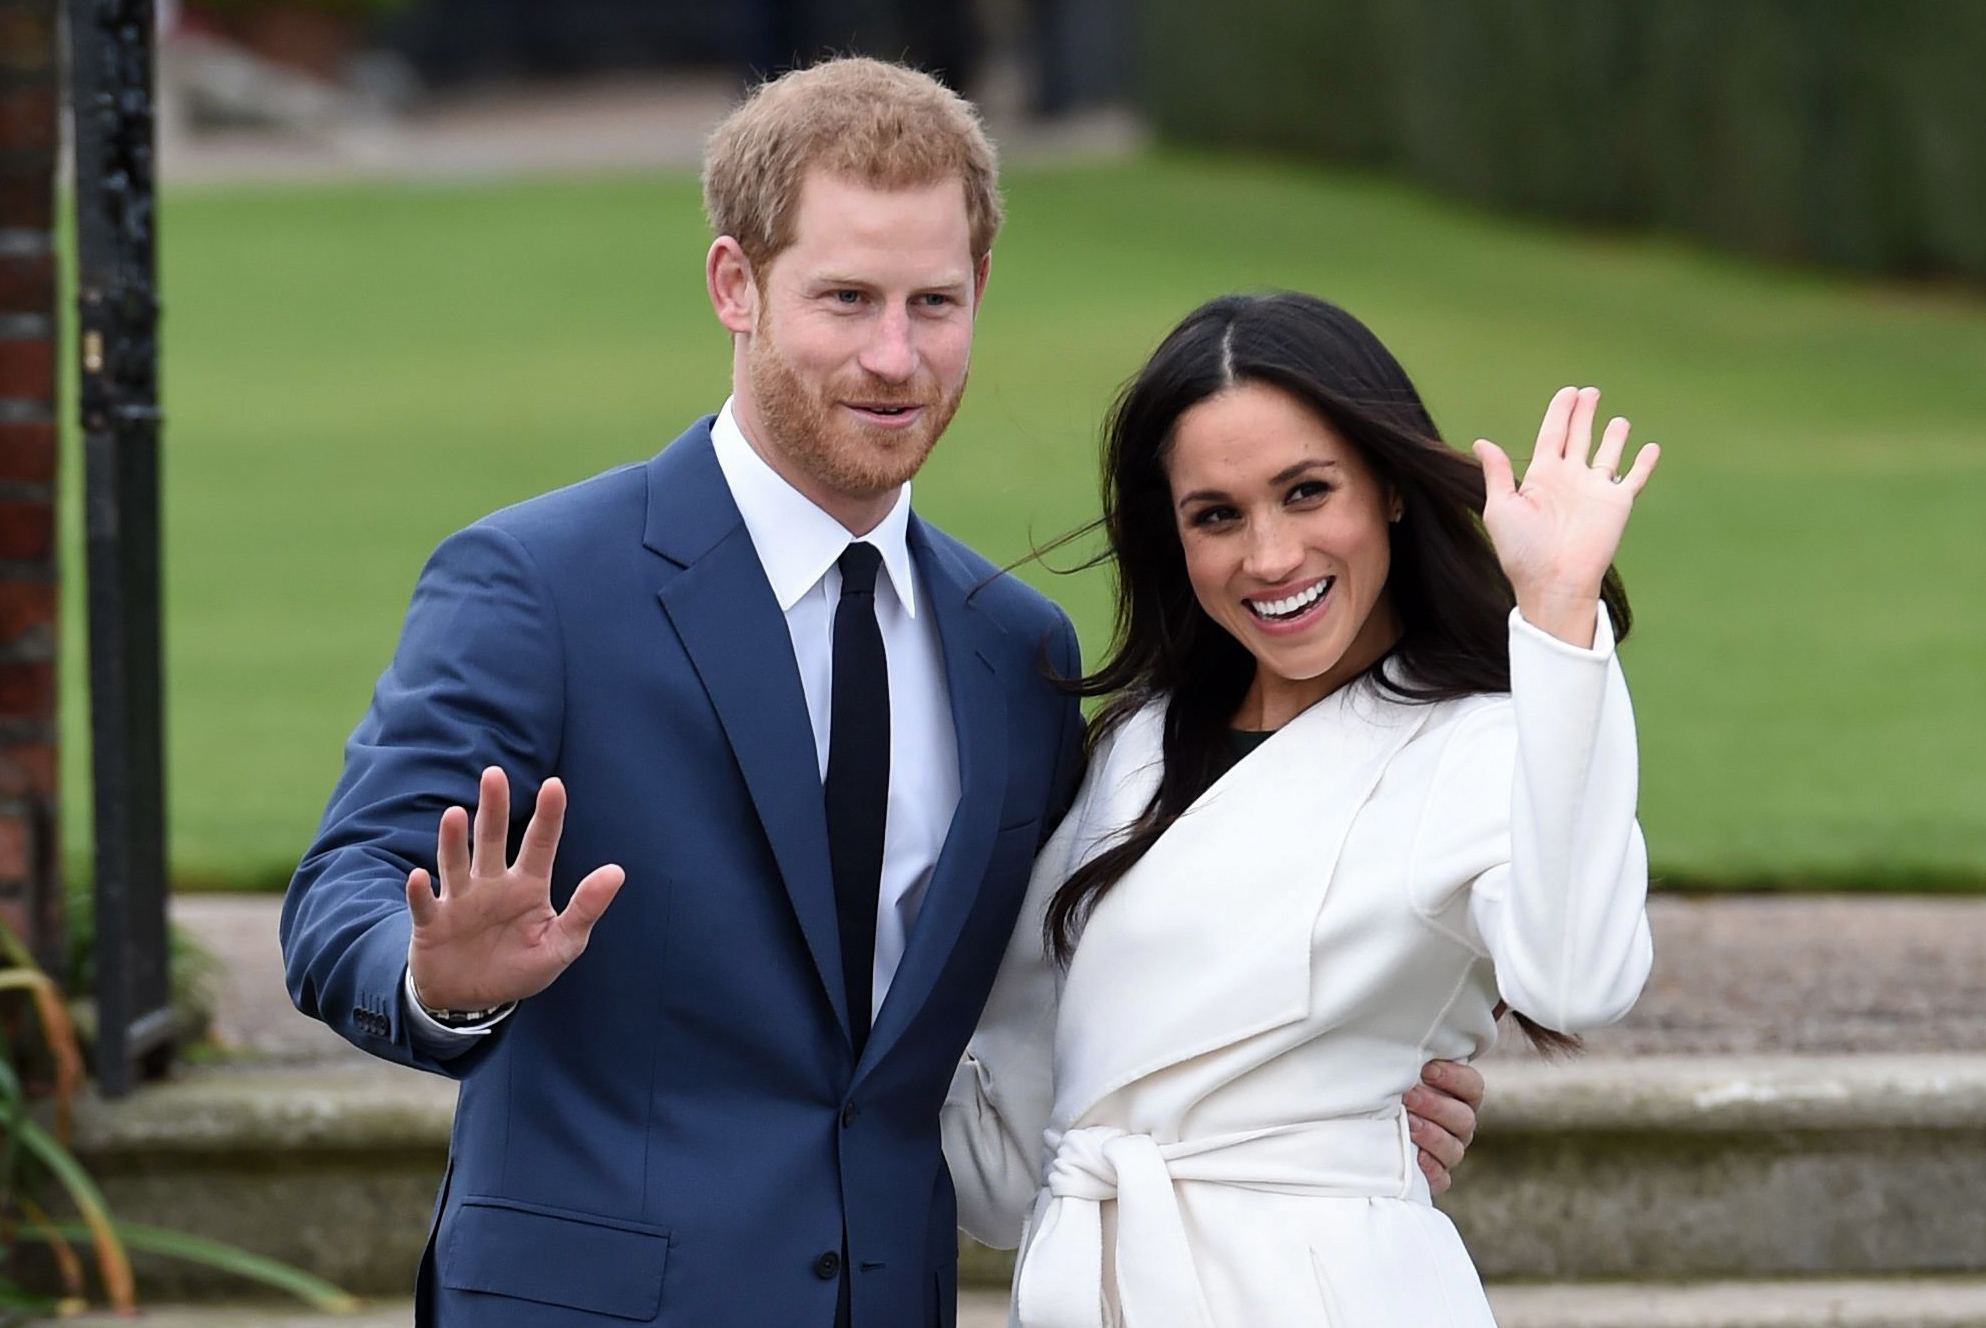 Royal_Wedding-Meghan_Markle_77446-159532.jpg71857663